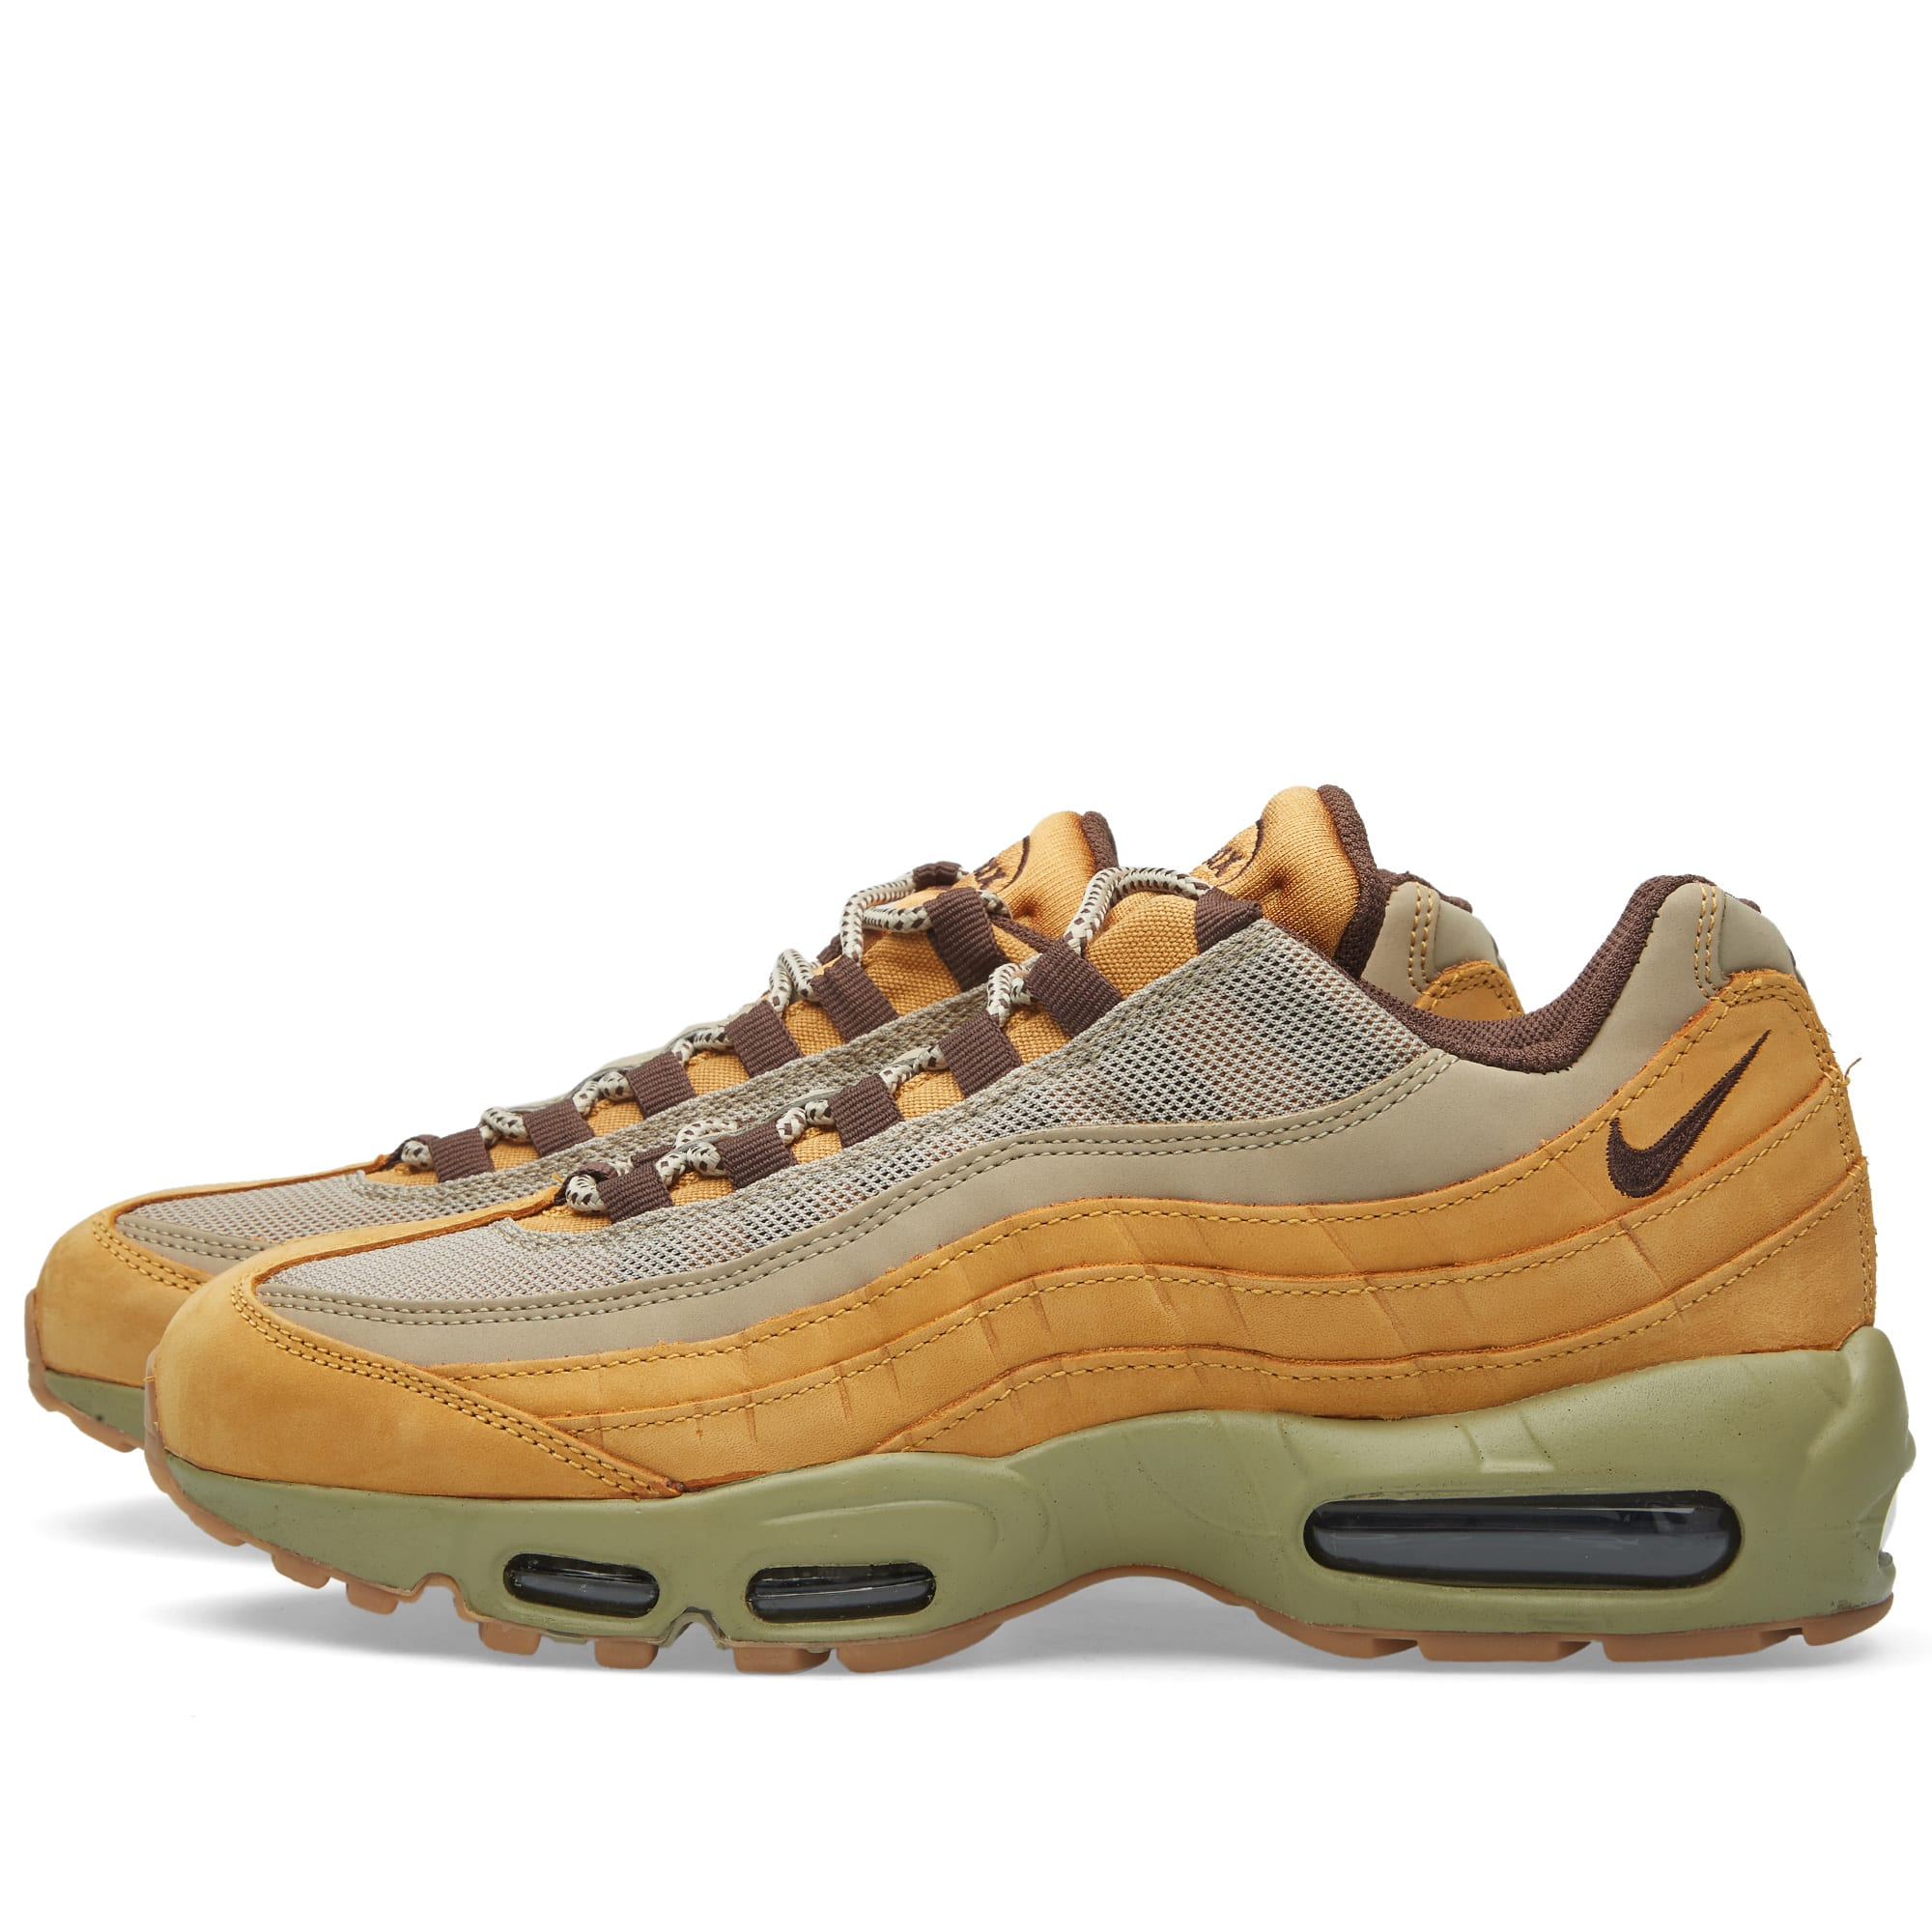 abd27c22f5191 Nike Air Max 95 Premium 'Wheat' Bronze, Baroque Brown & Bamboo | END.